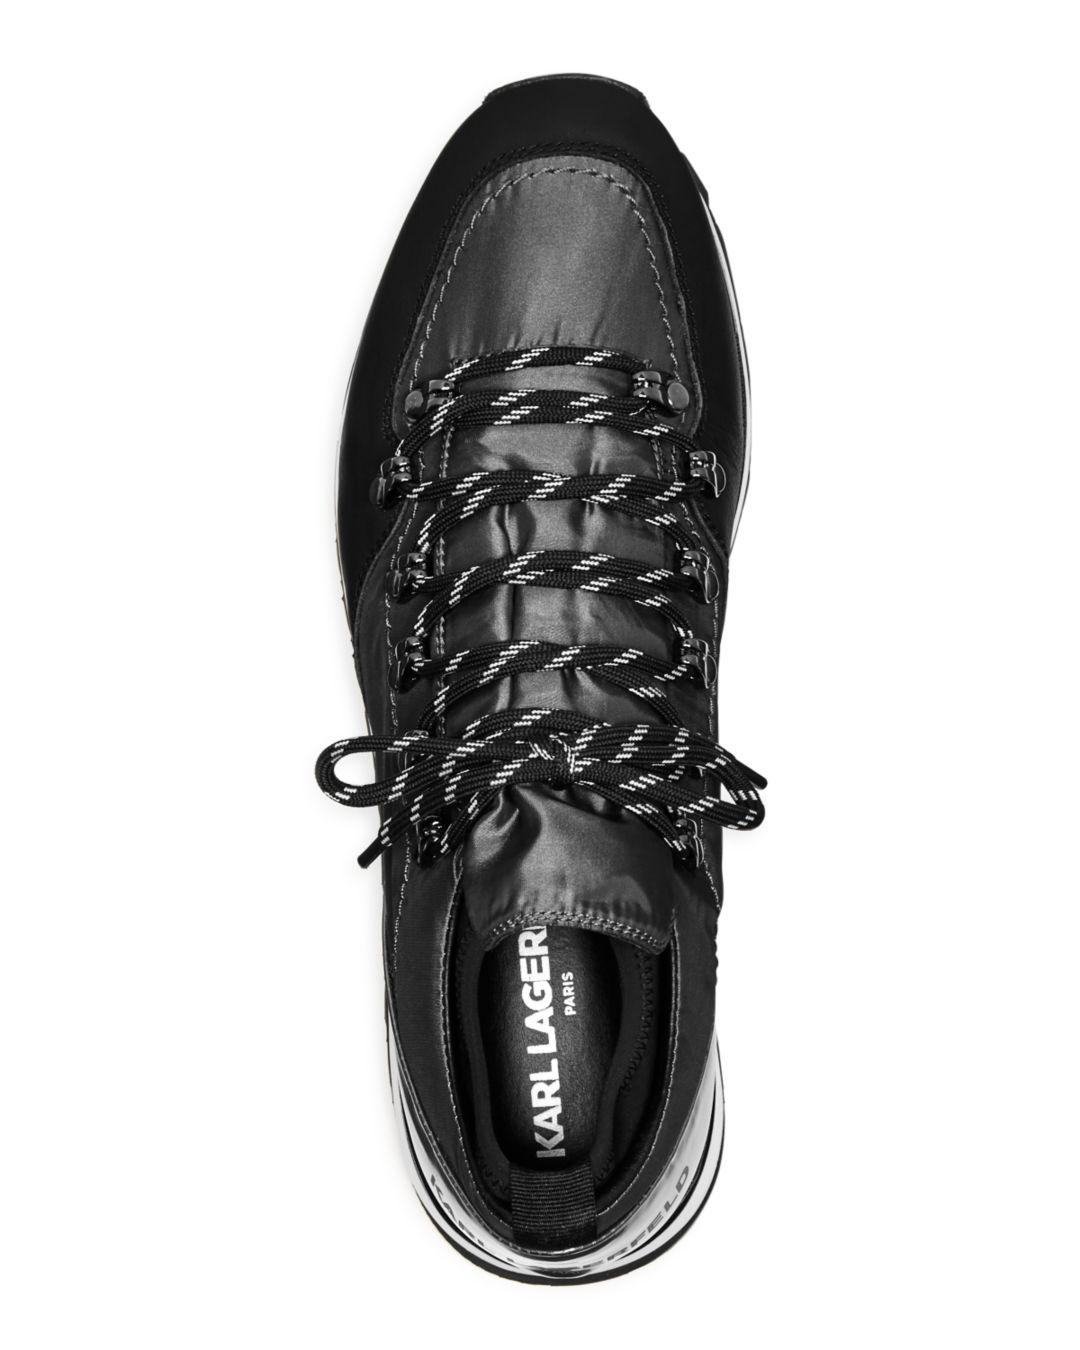 b2c424cc47d7 Lyst - Karl Lagerfeld Men s Mixed-media Lace-up Sneakers in Gray for Men